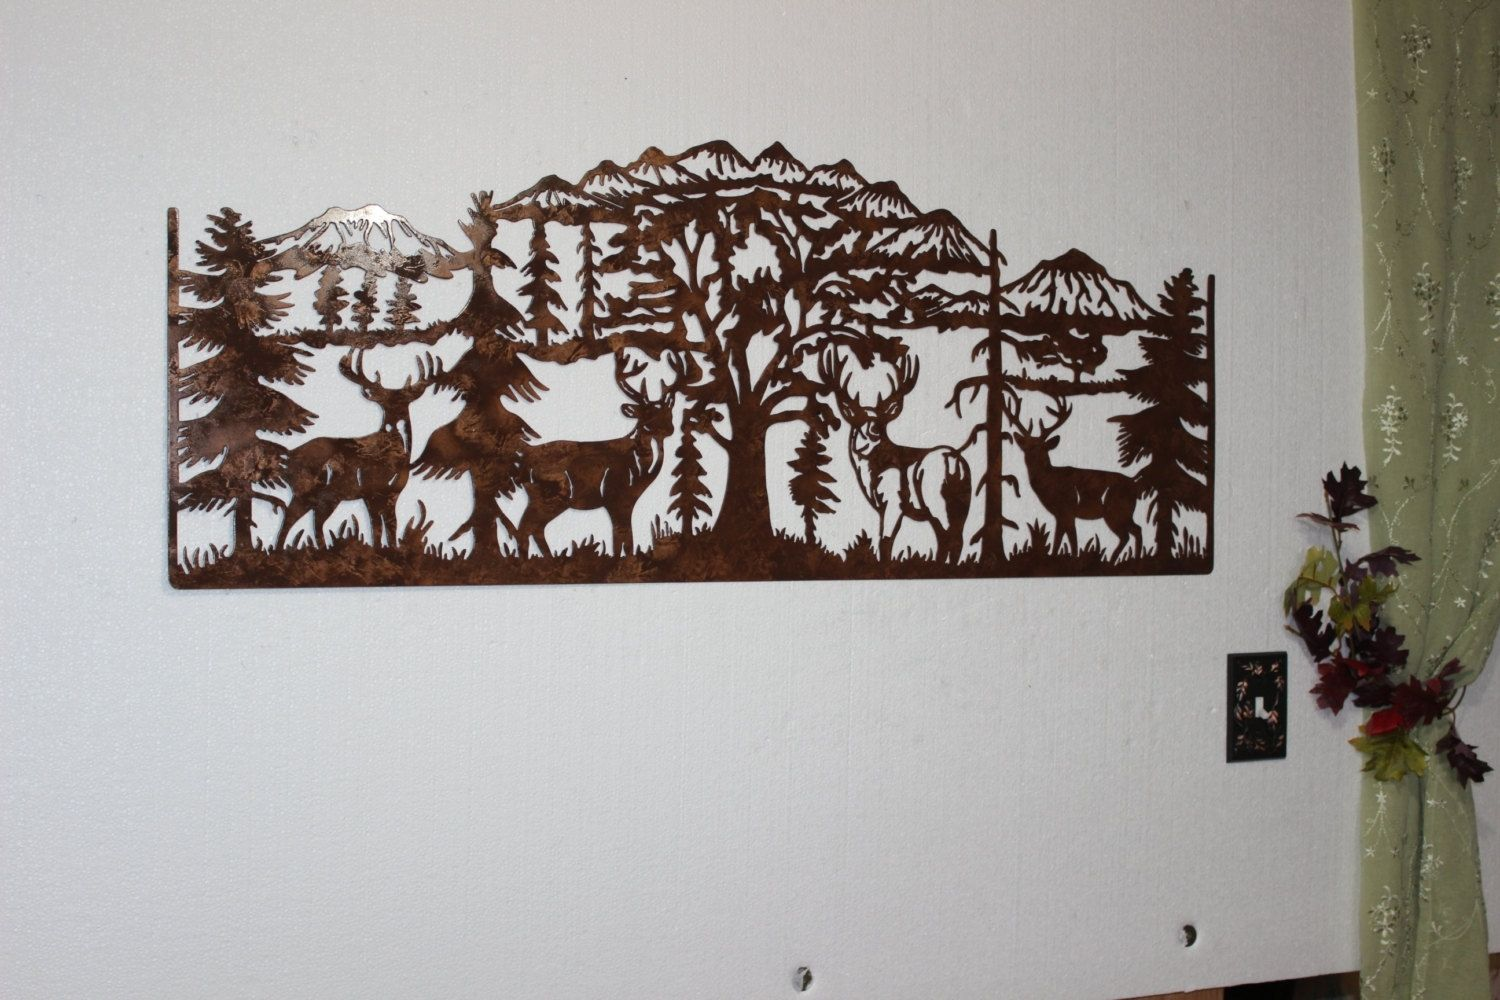 Hand Crafted Deer And Mountain Scene With 4 Majestic Bucks